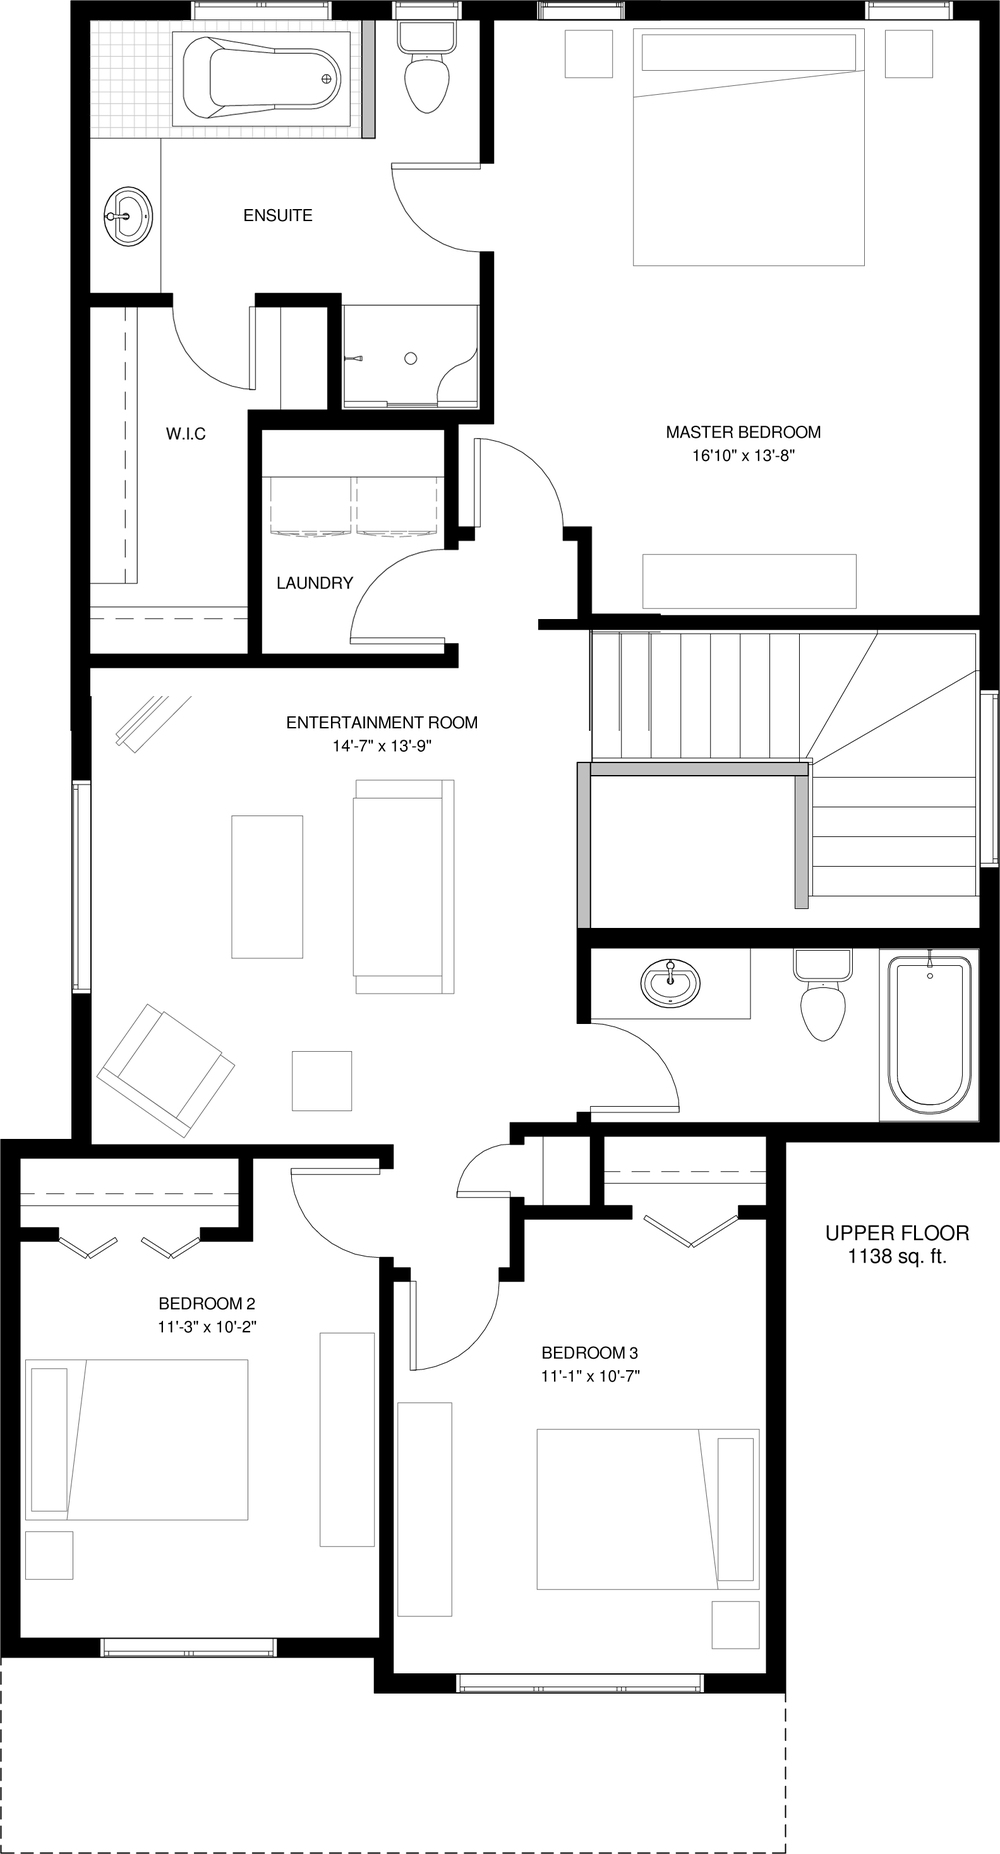 Upper Floor Optional Ensuite 1138 sq ft